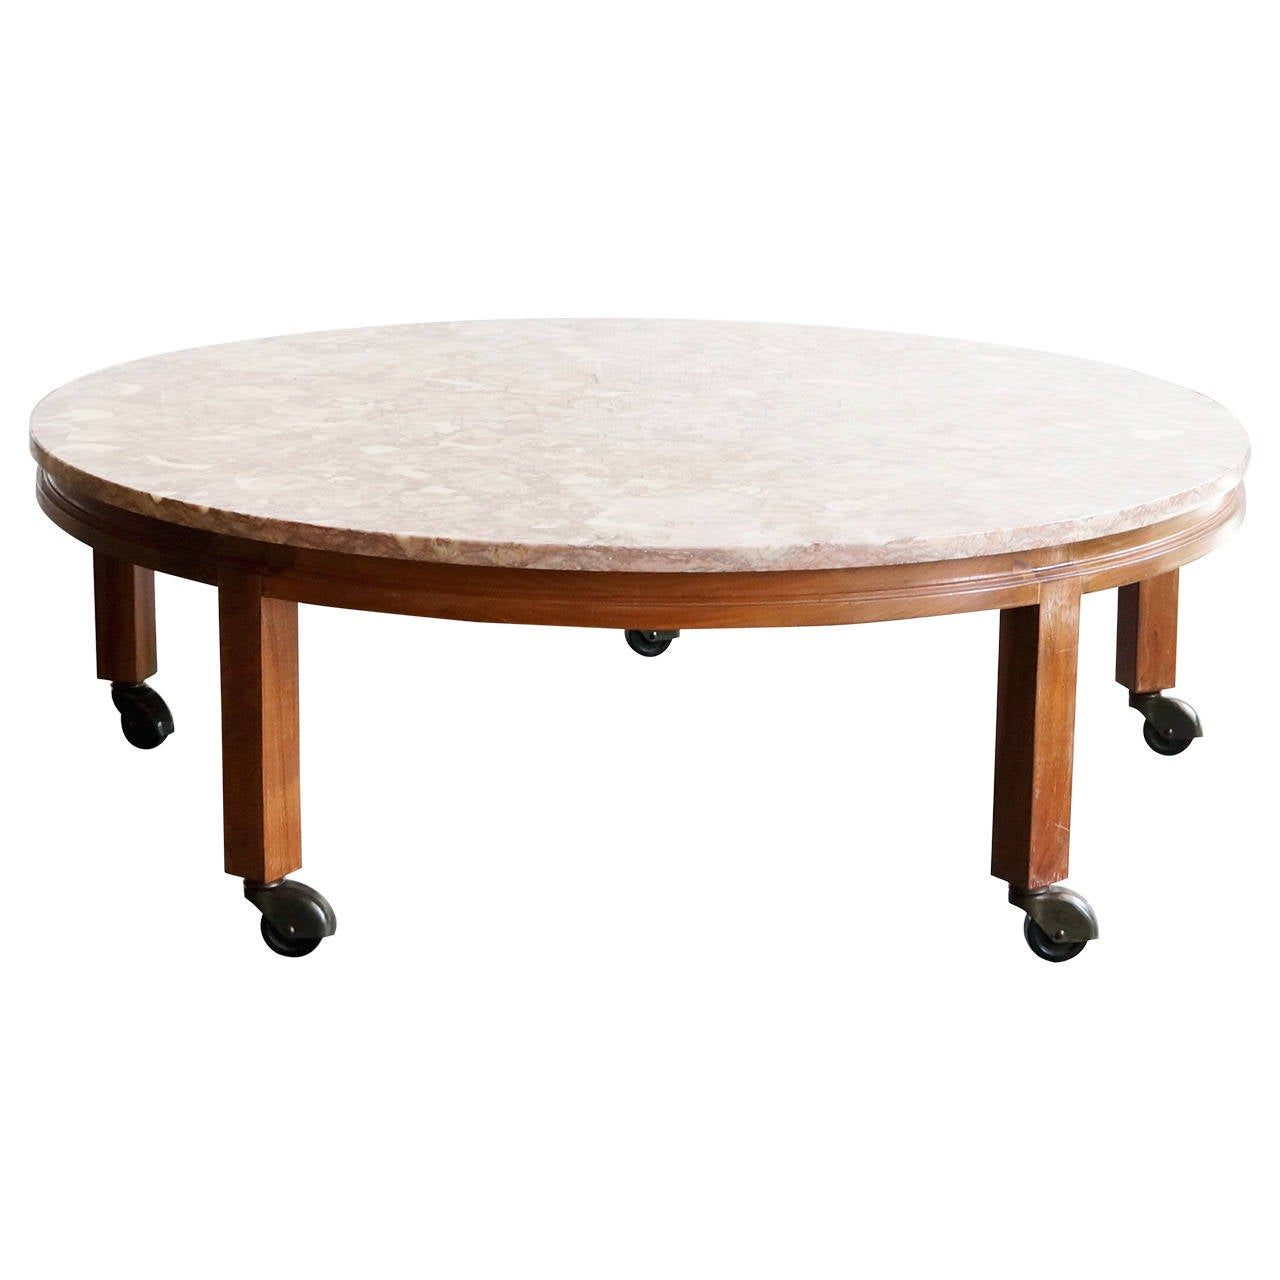 Vintage pink marble and walnut round coffee table at 1stdibs Granite coffee table